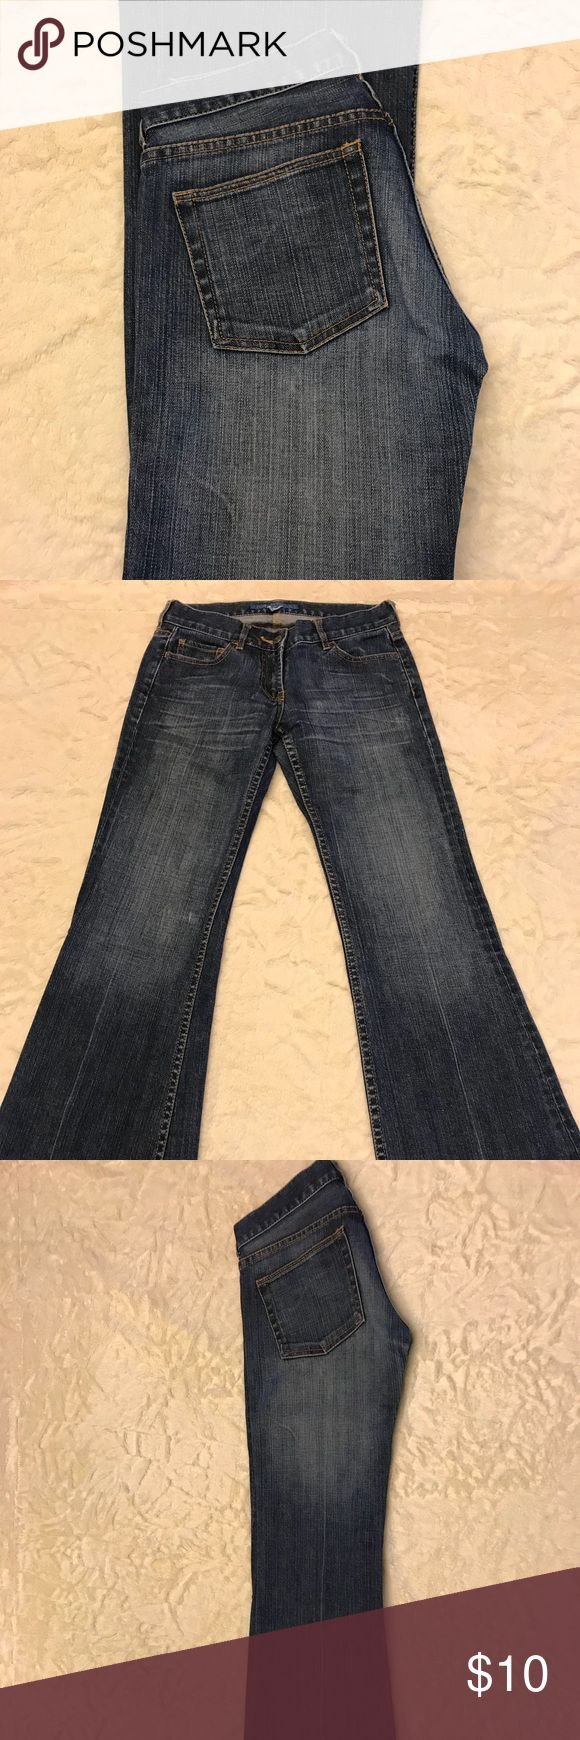 French Connection Jeans 👖 French Connection United Kingdom Jeans (FCUK) are in excellent condition. Size 4 French Connection Jeans